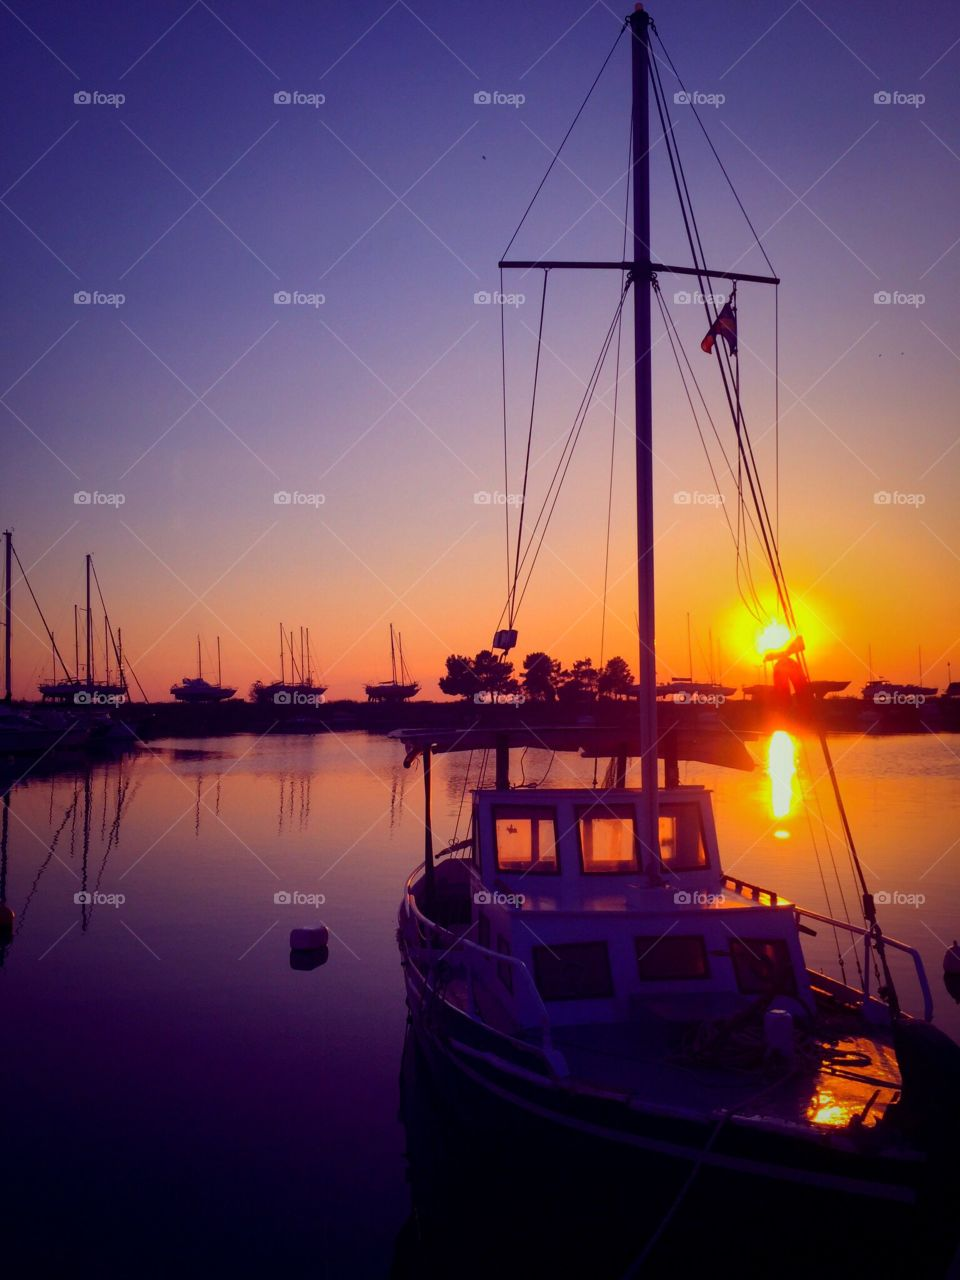 Boats moored at harbor at dusk